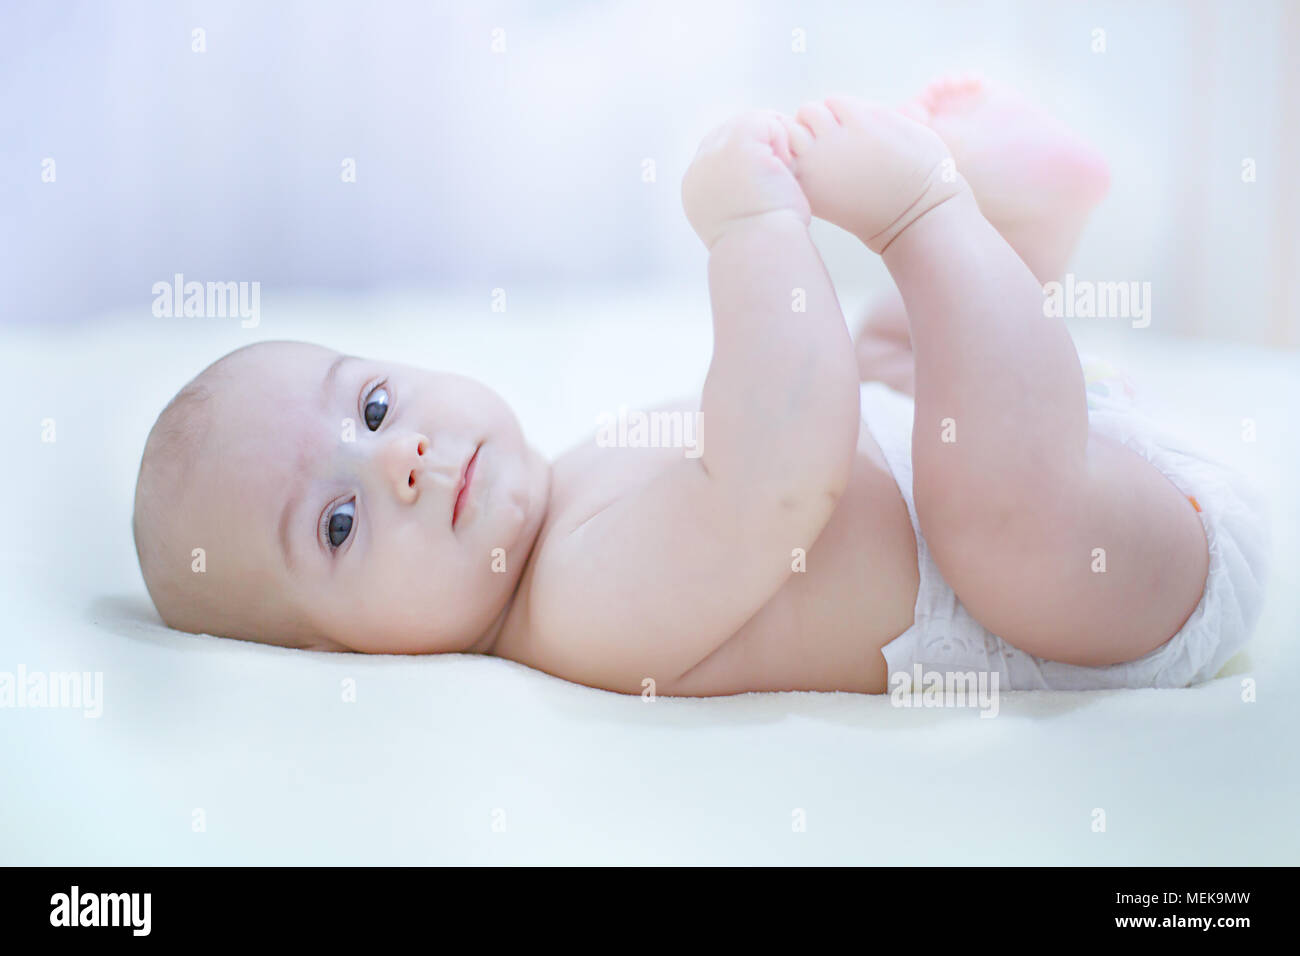 Cute baby infant boy wearing diaper playing